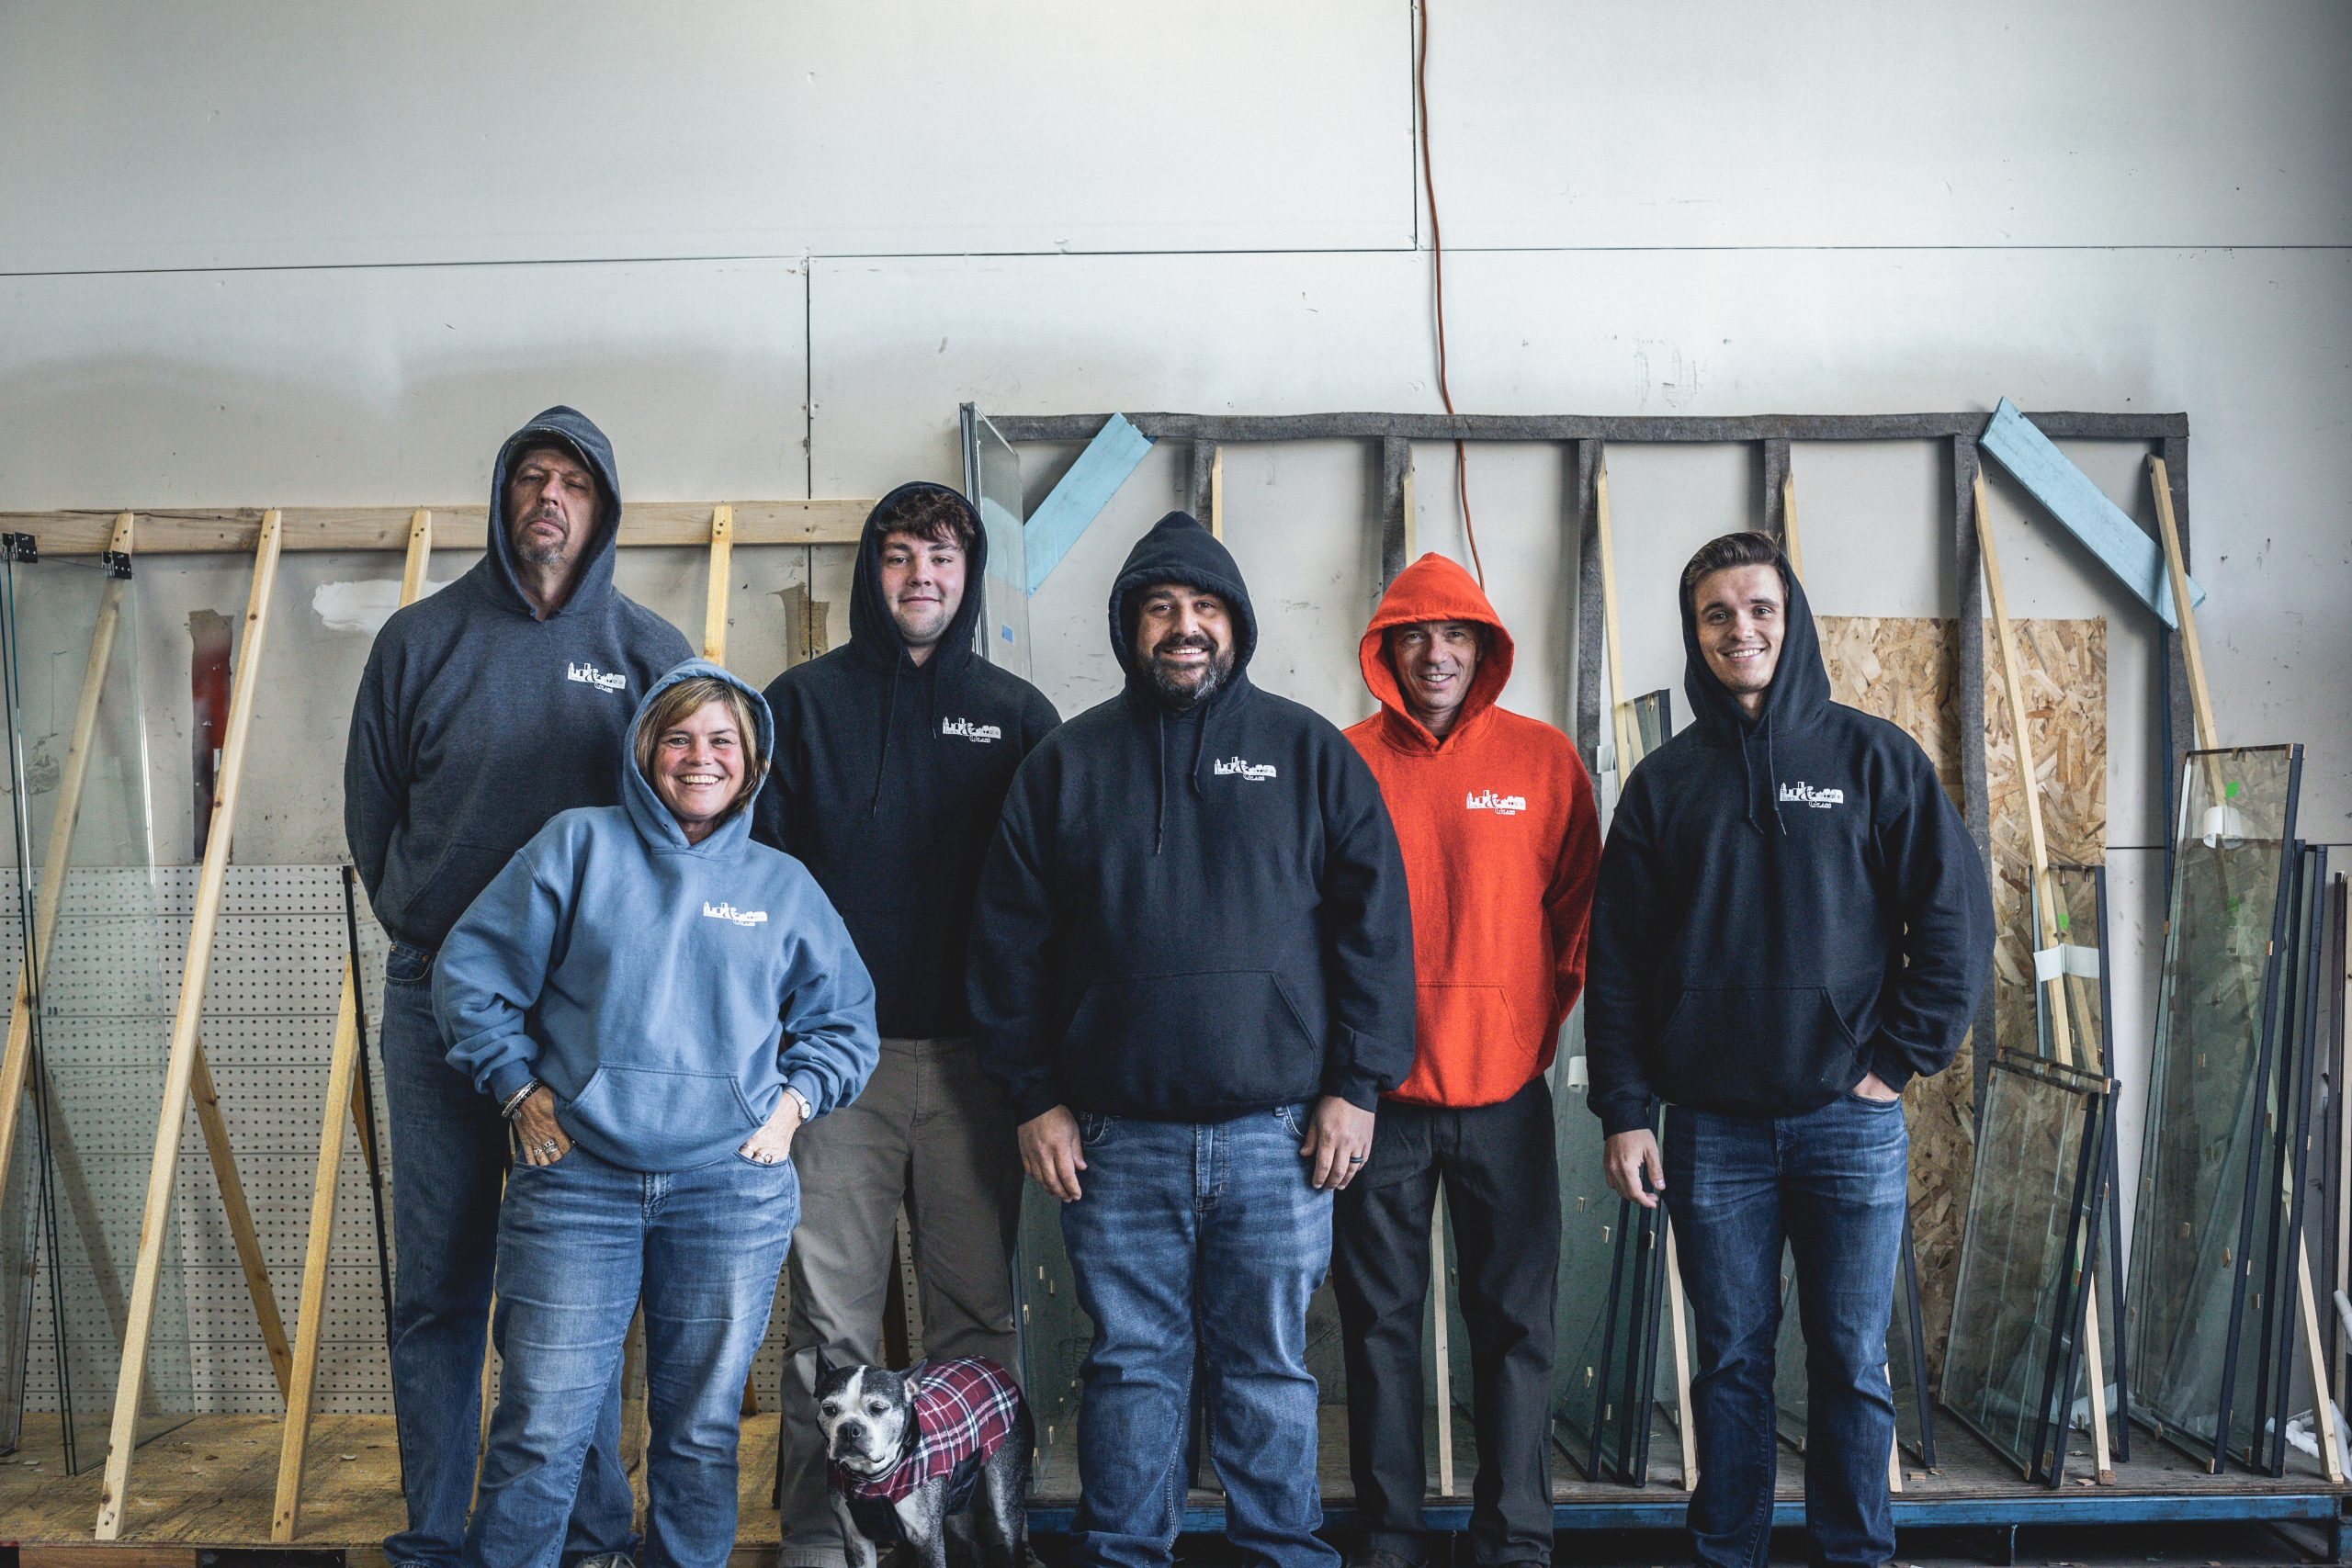 The Fairview window screen repair crew at T&C Glass